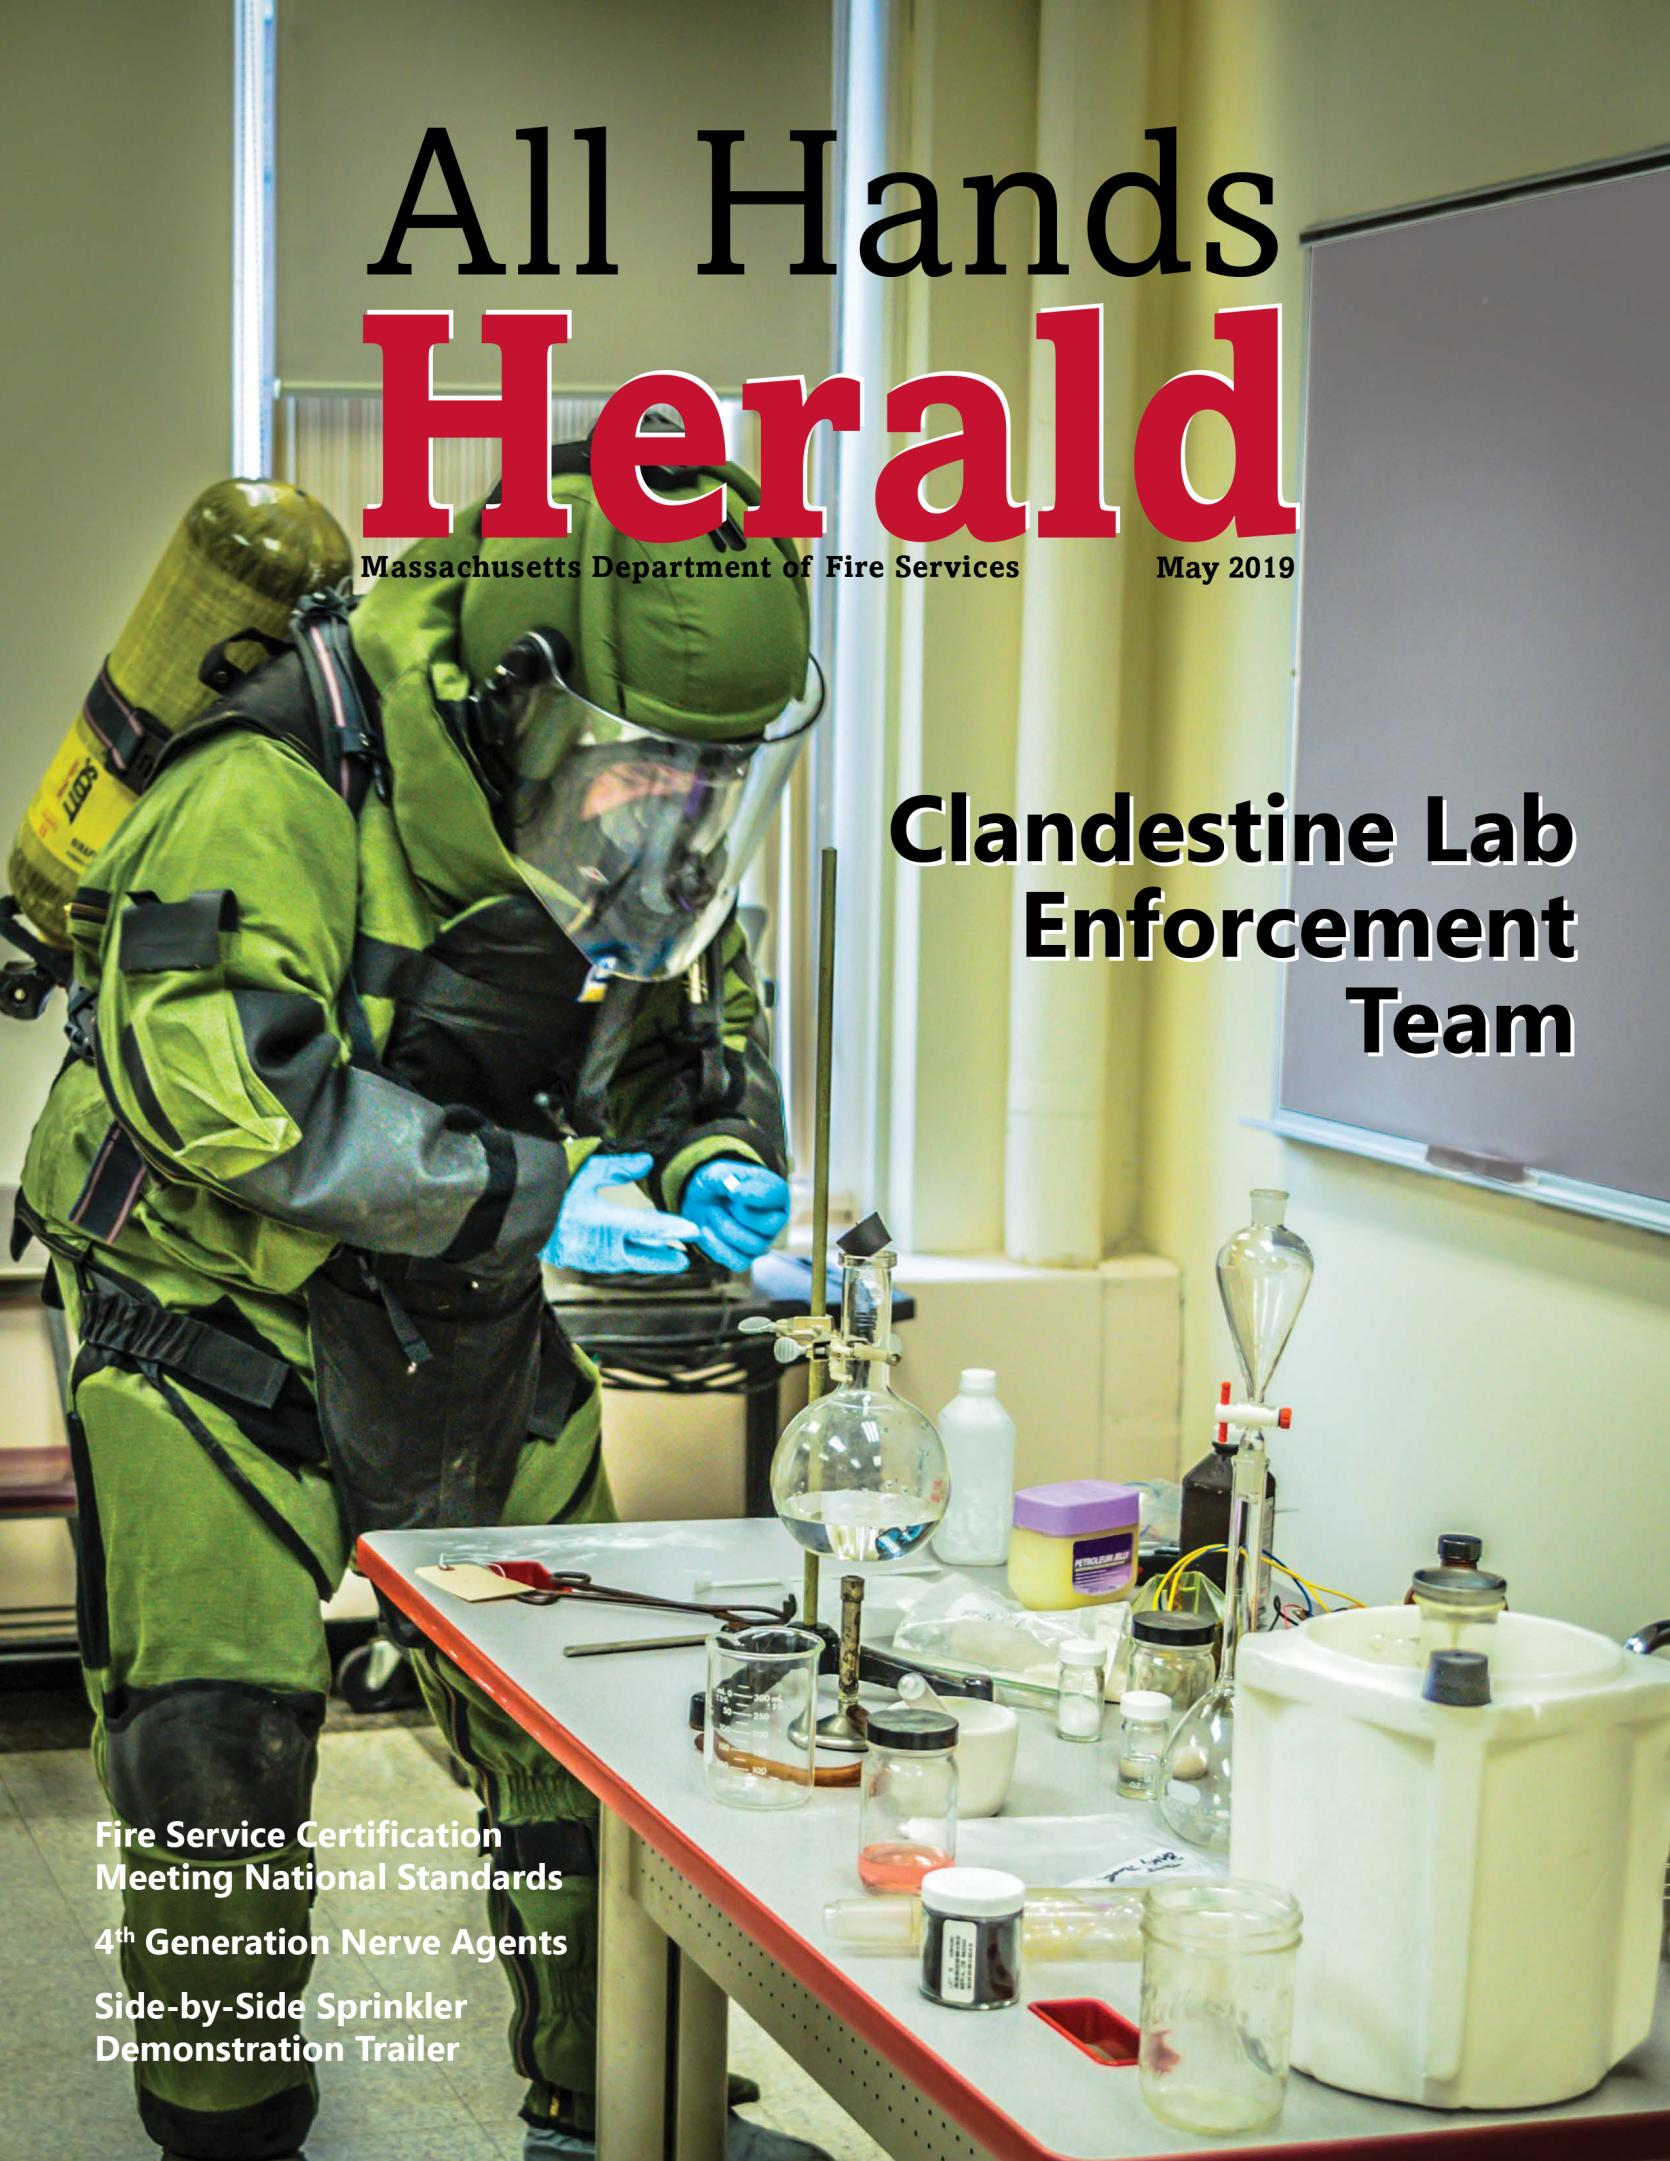 Cover of May 2019 All Hands Herald shows member of CLET in protective gear